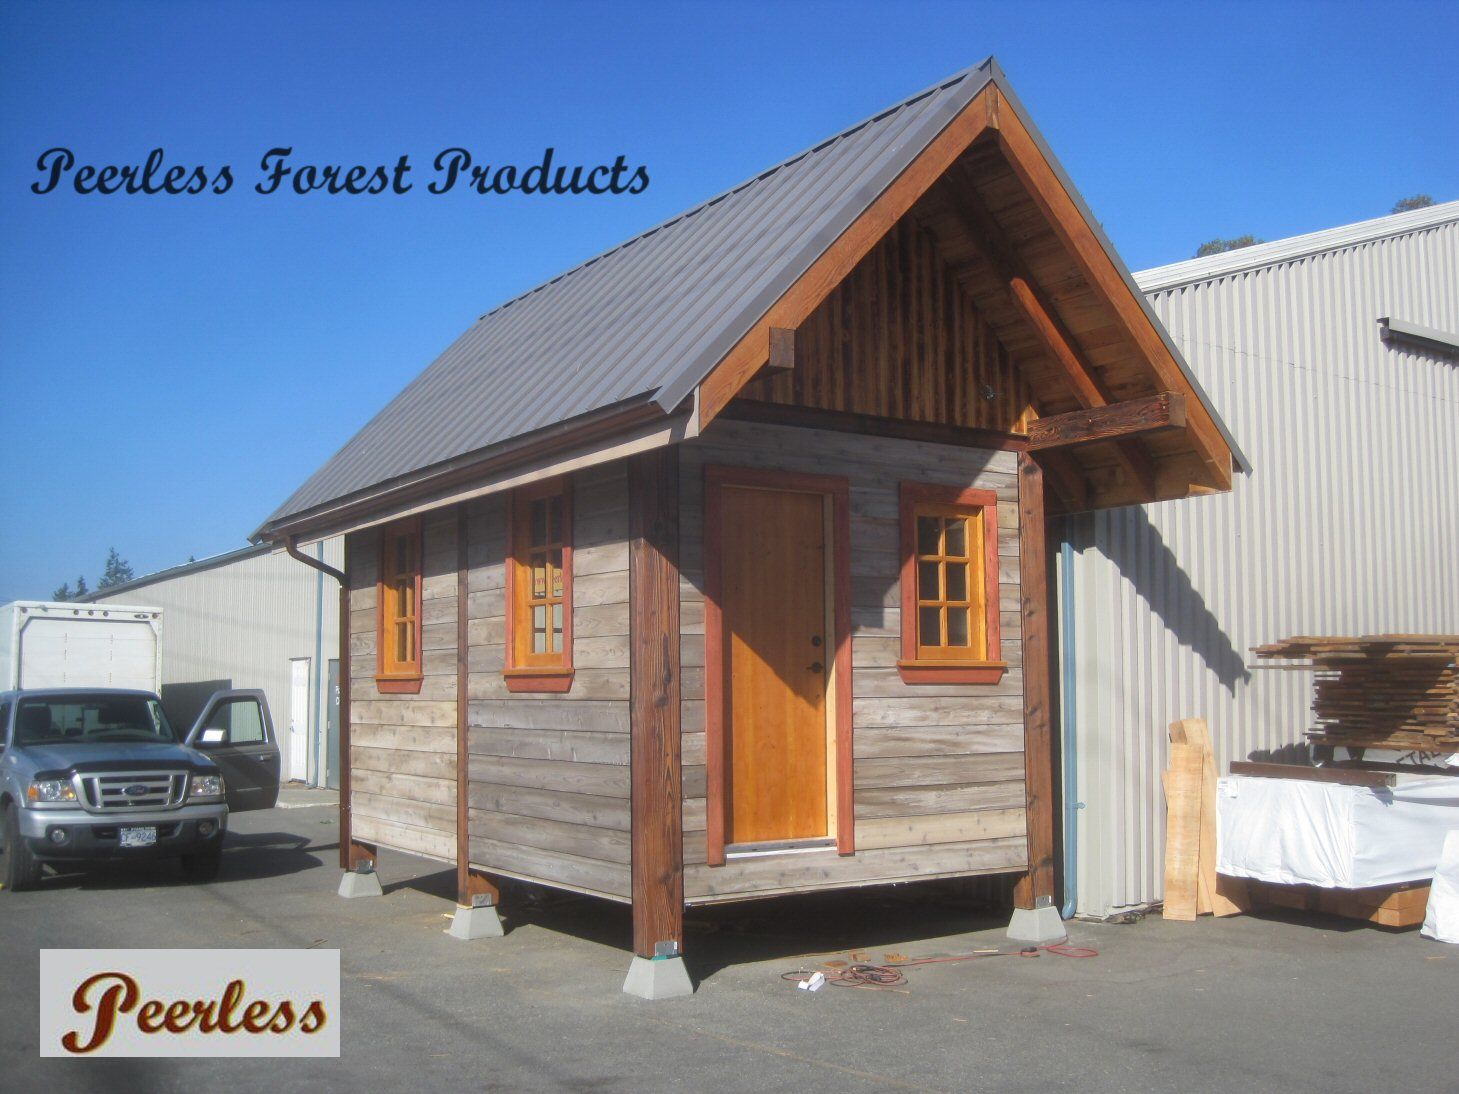 Peerless Off Grid Cabin 10x16 Structure 21, Victoria, BC